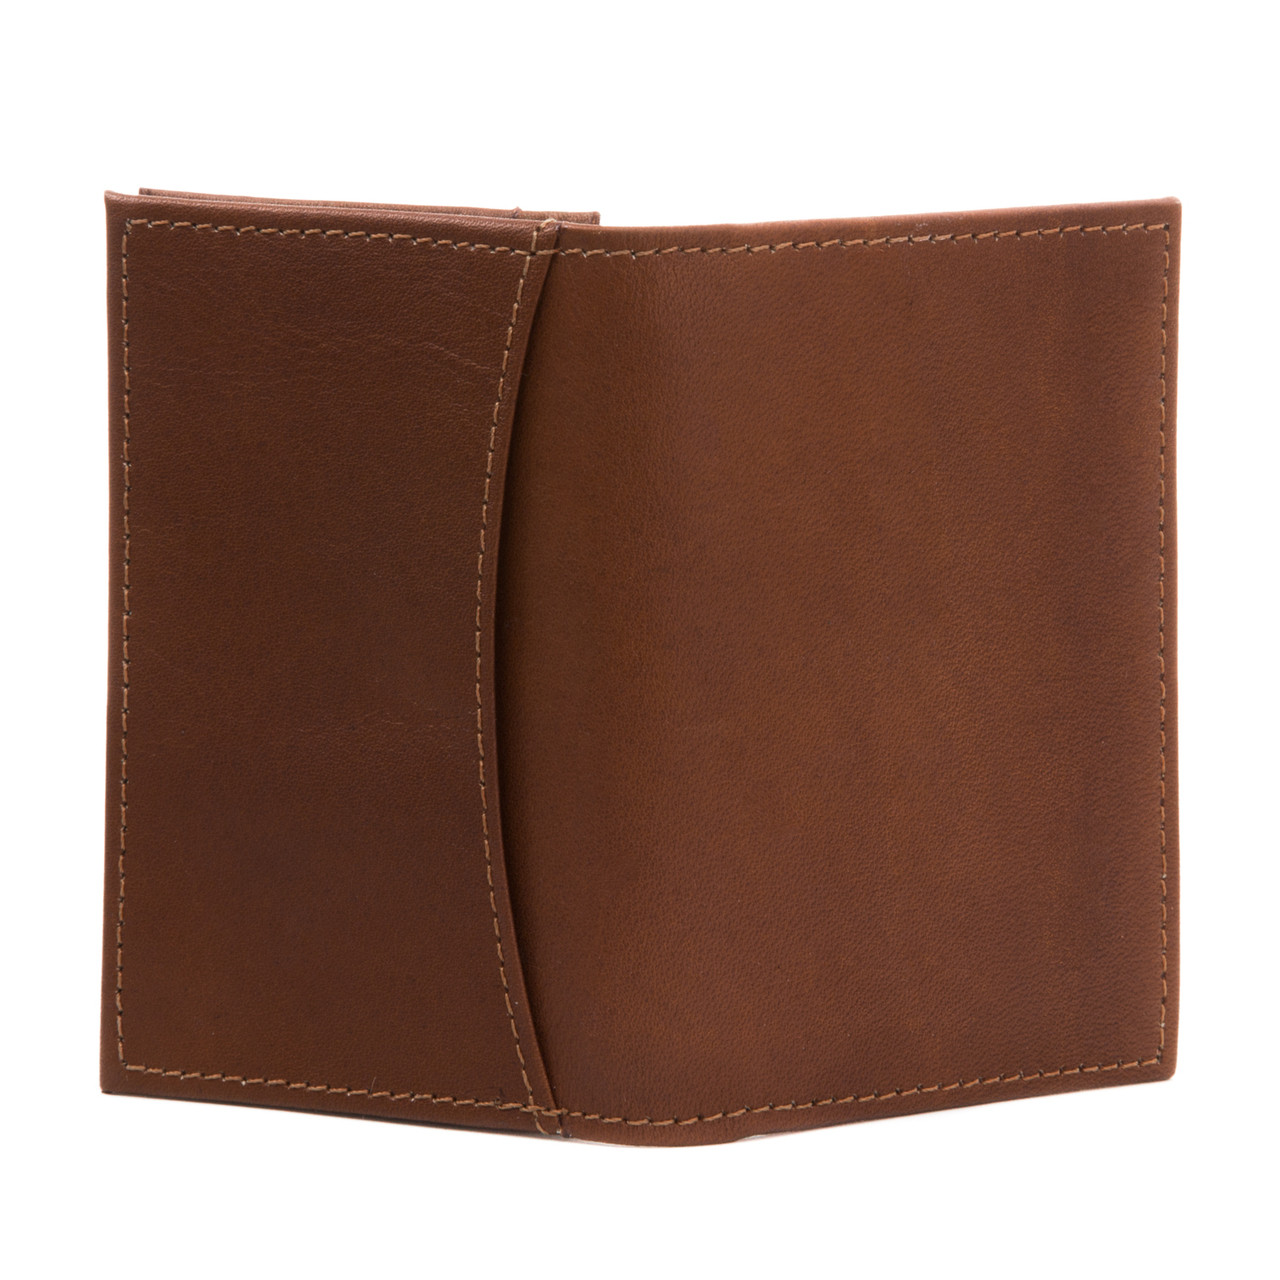 Carlo - Business and Credit Card Case Wallet - Back View, Saddle